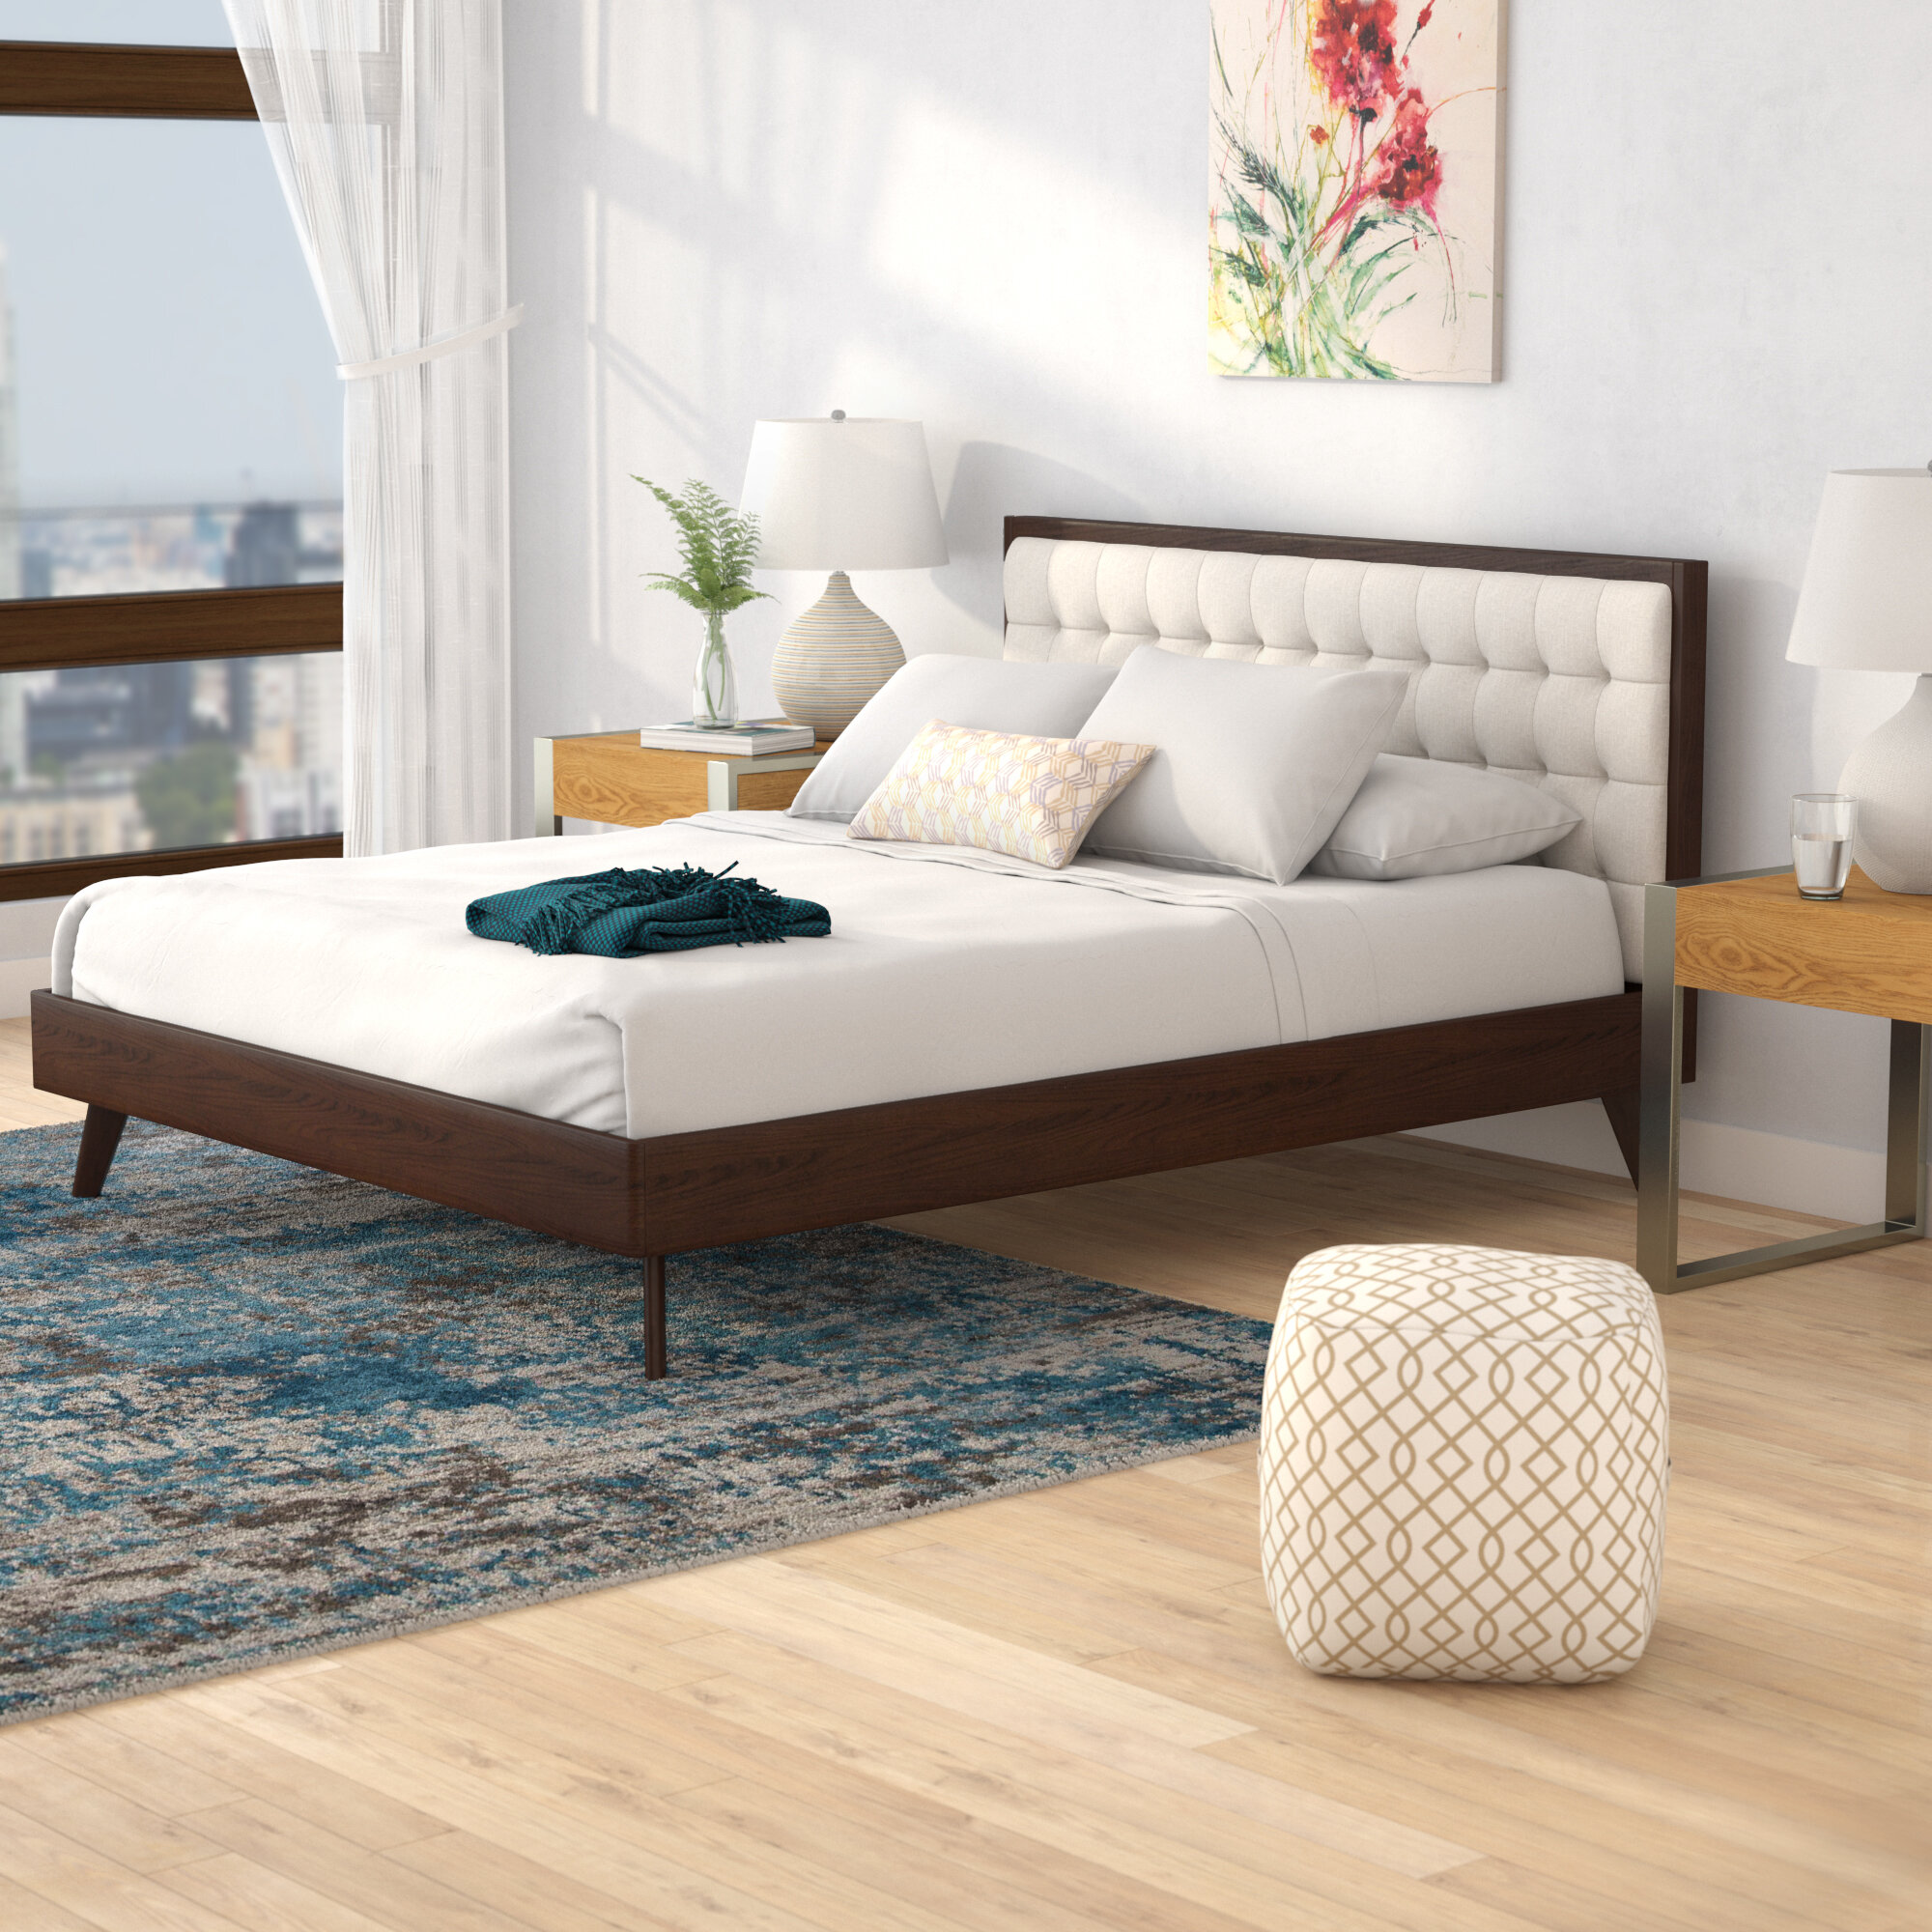 King Size Mid Century Modern Beds You Ll Love In 2021 Wayfair